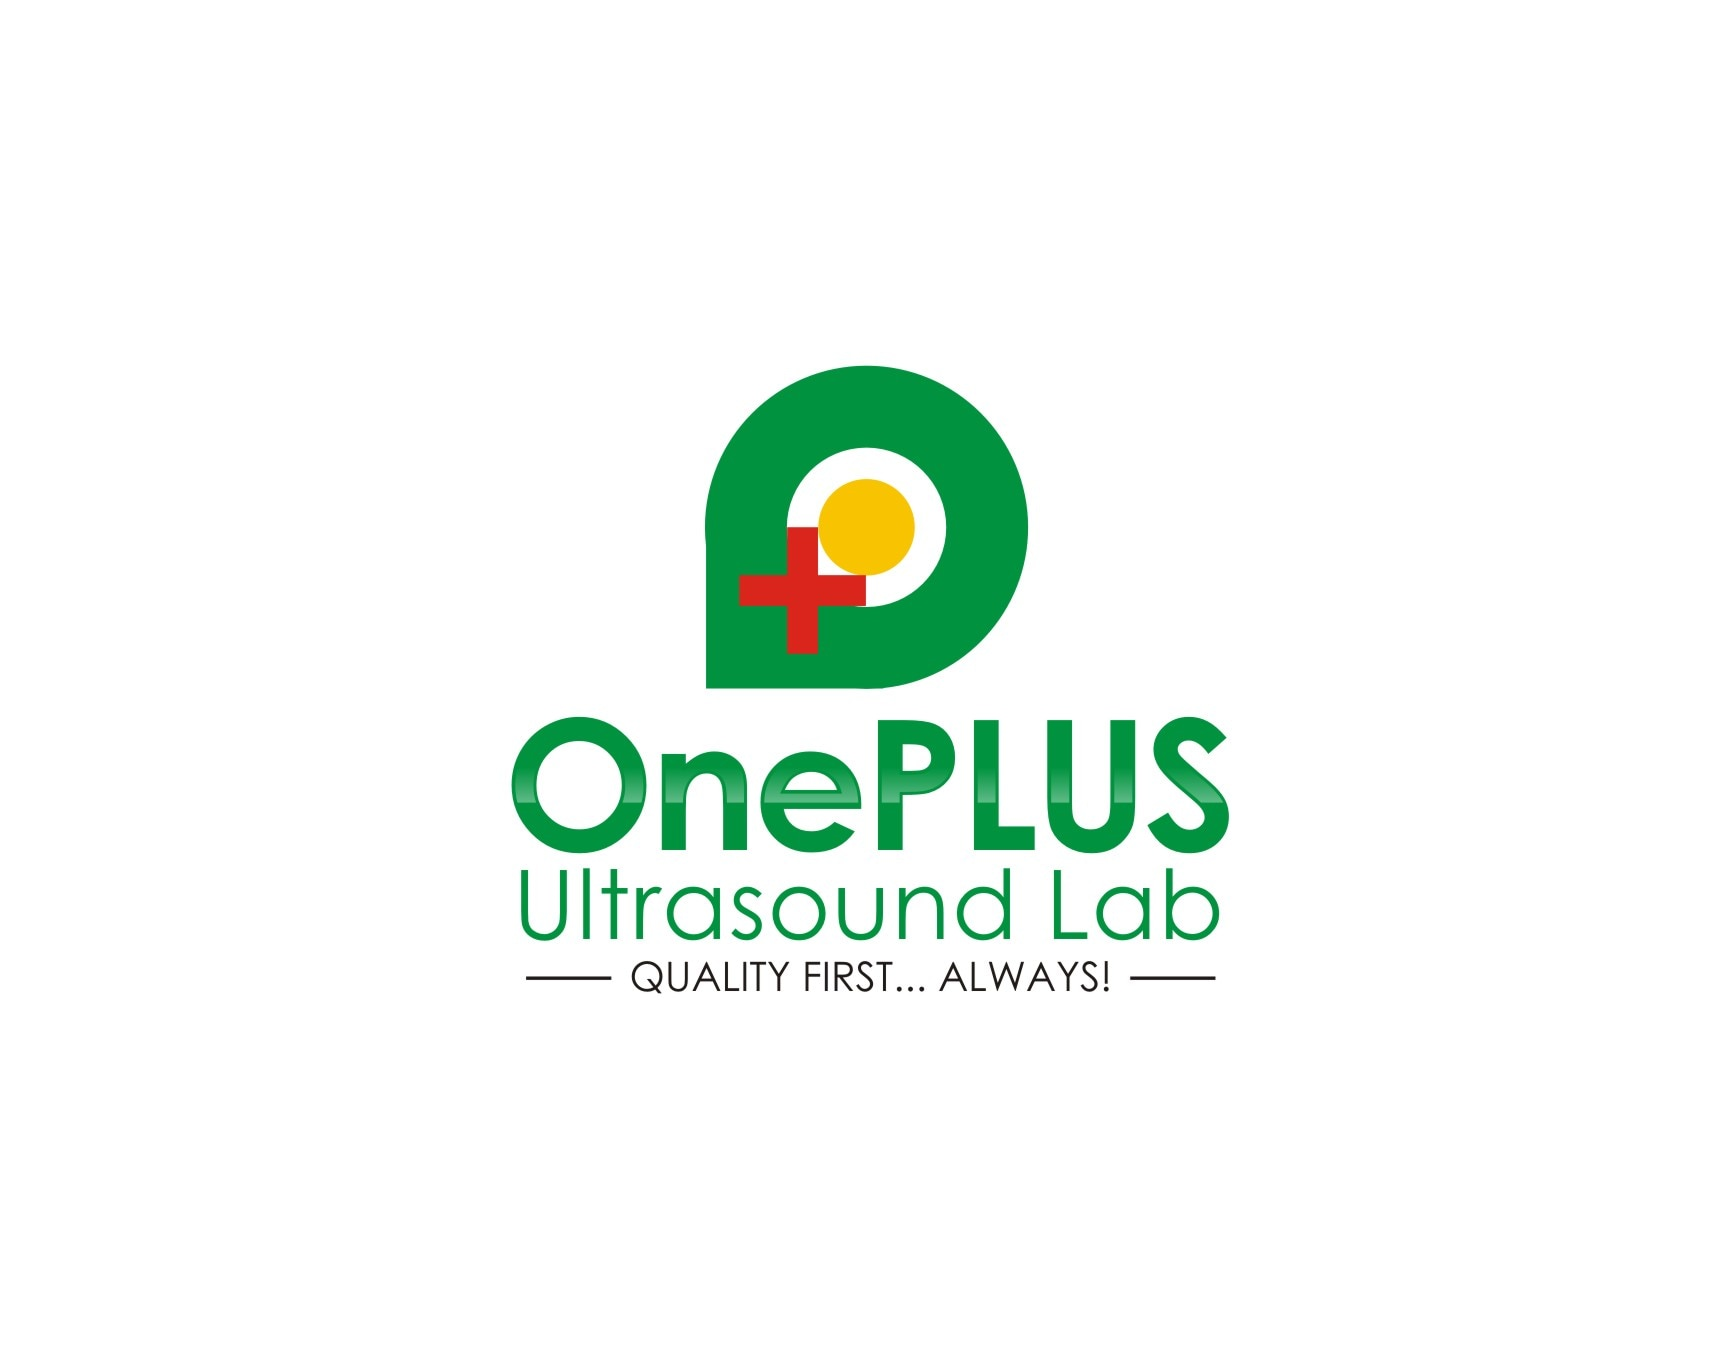 Blood tests at Diagnostic centre in Pitampura  Get your blood tests done at economical prices by experienced doctors. Thyroid testing, hormones, complete blood counts, infertility testing, urine testing, X ray, ECG, Ultrasound, 2D echocardiography etc.  For more info visit www.oneplusul.in